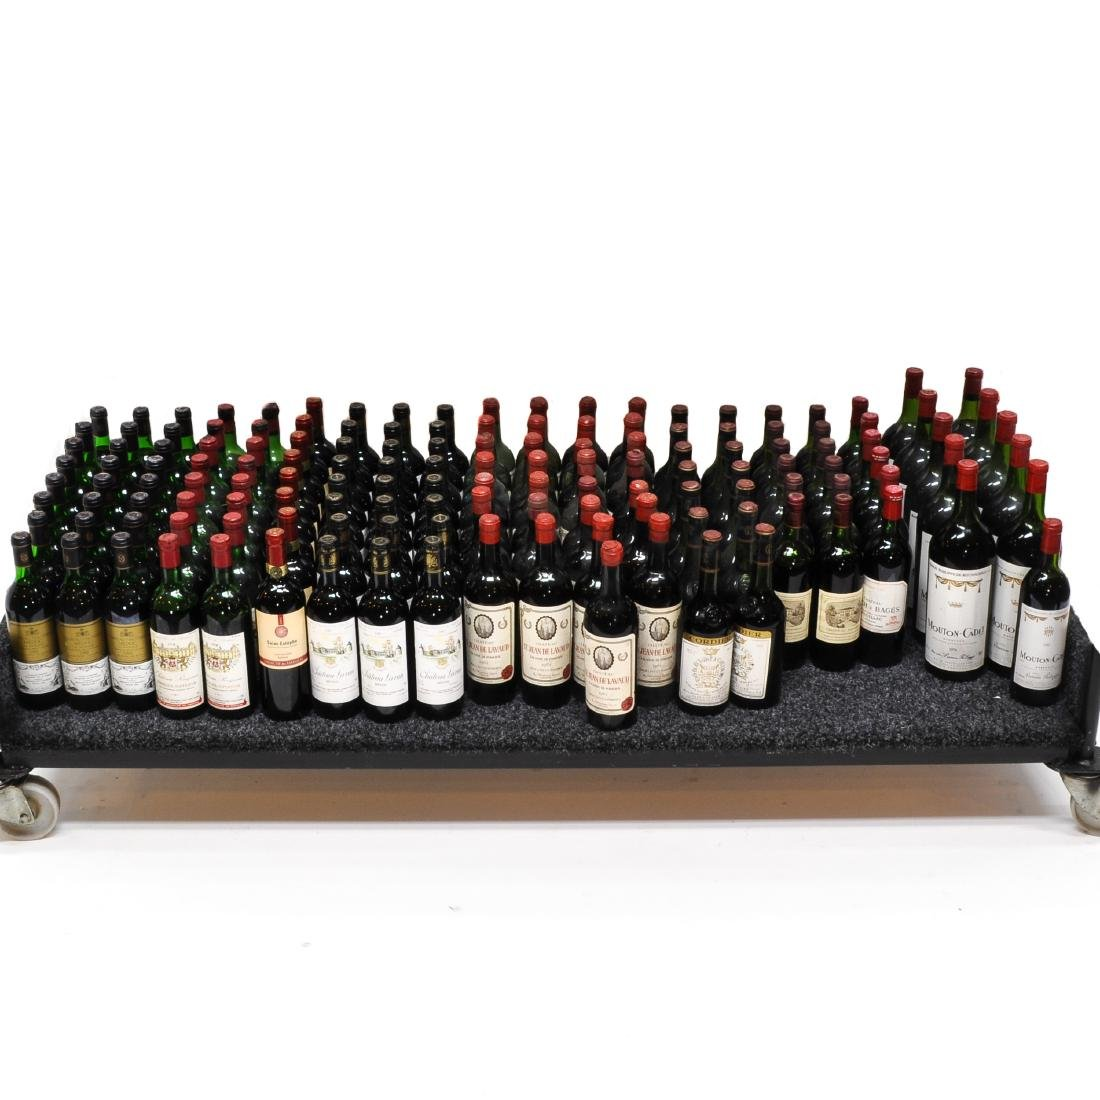 A Collection of One Hundred Forty-Four Wine